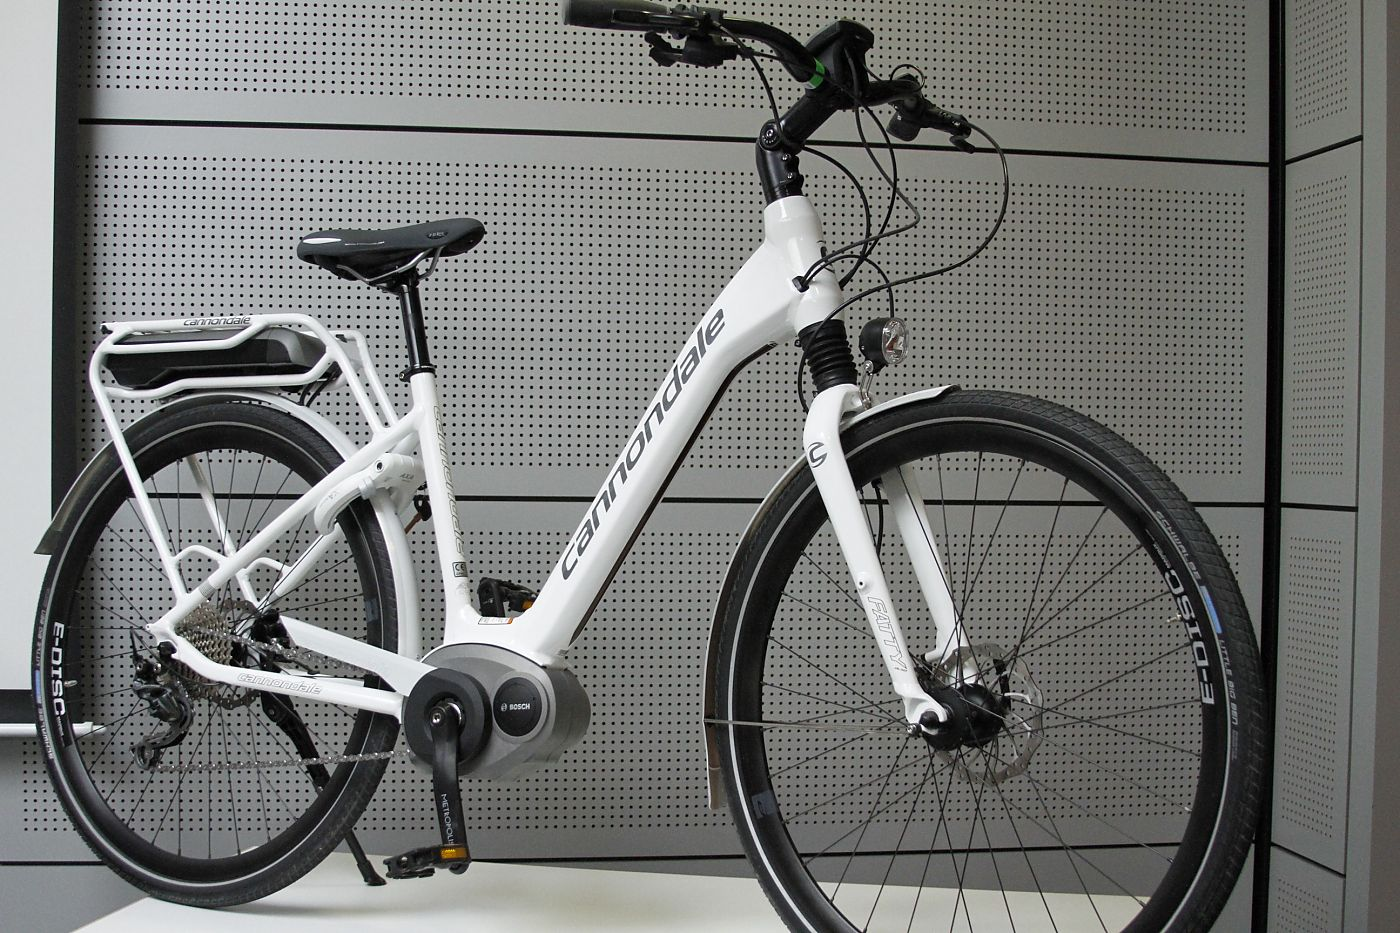 70882b5ea33 Cannondale grows e-bike lineup | Bicycle Retailer and Industry News